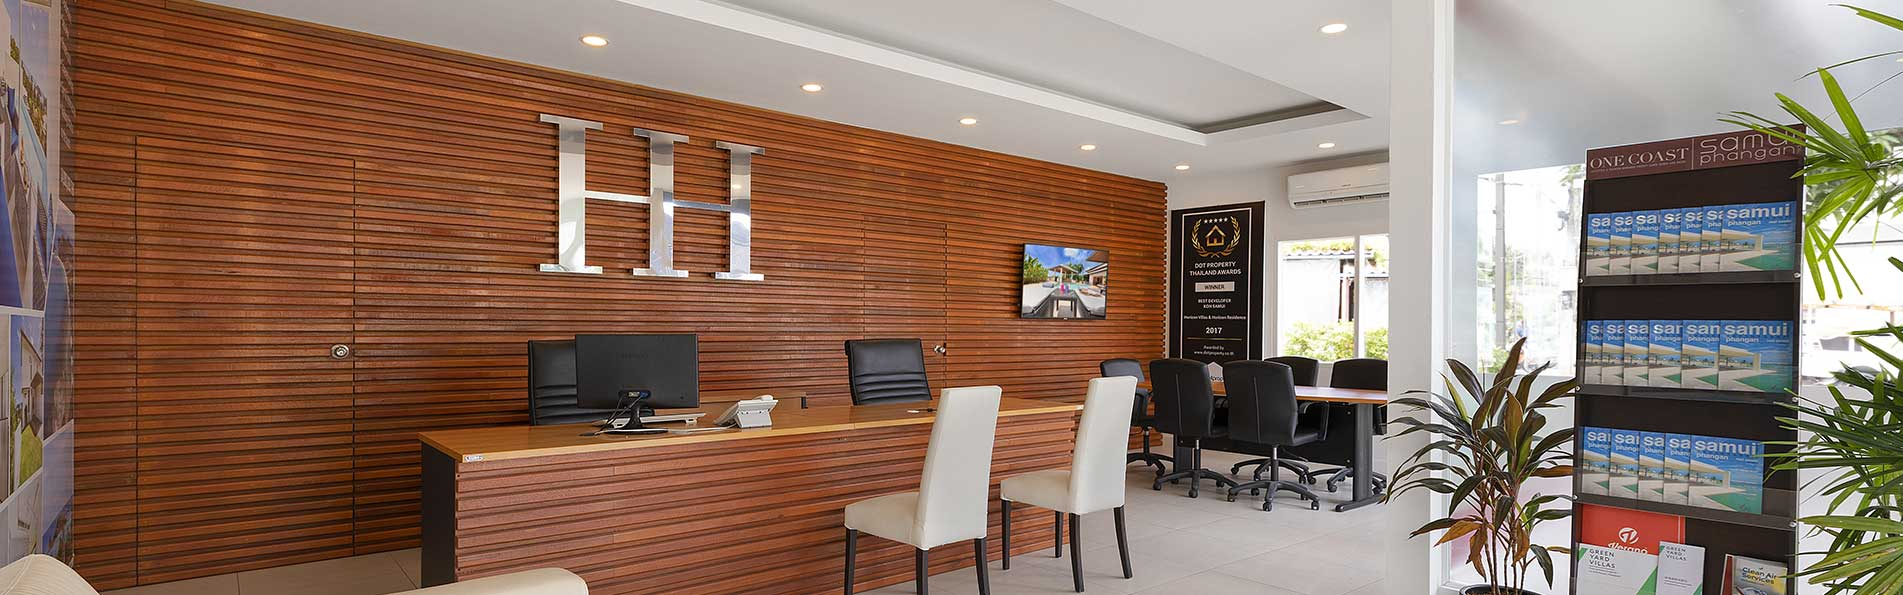 Horizon Homes office interior